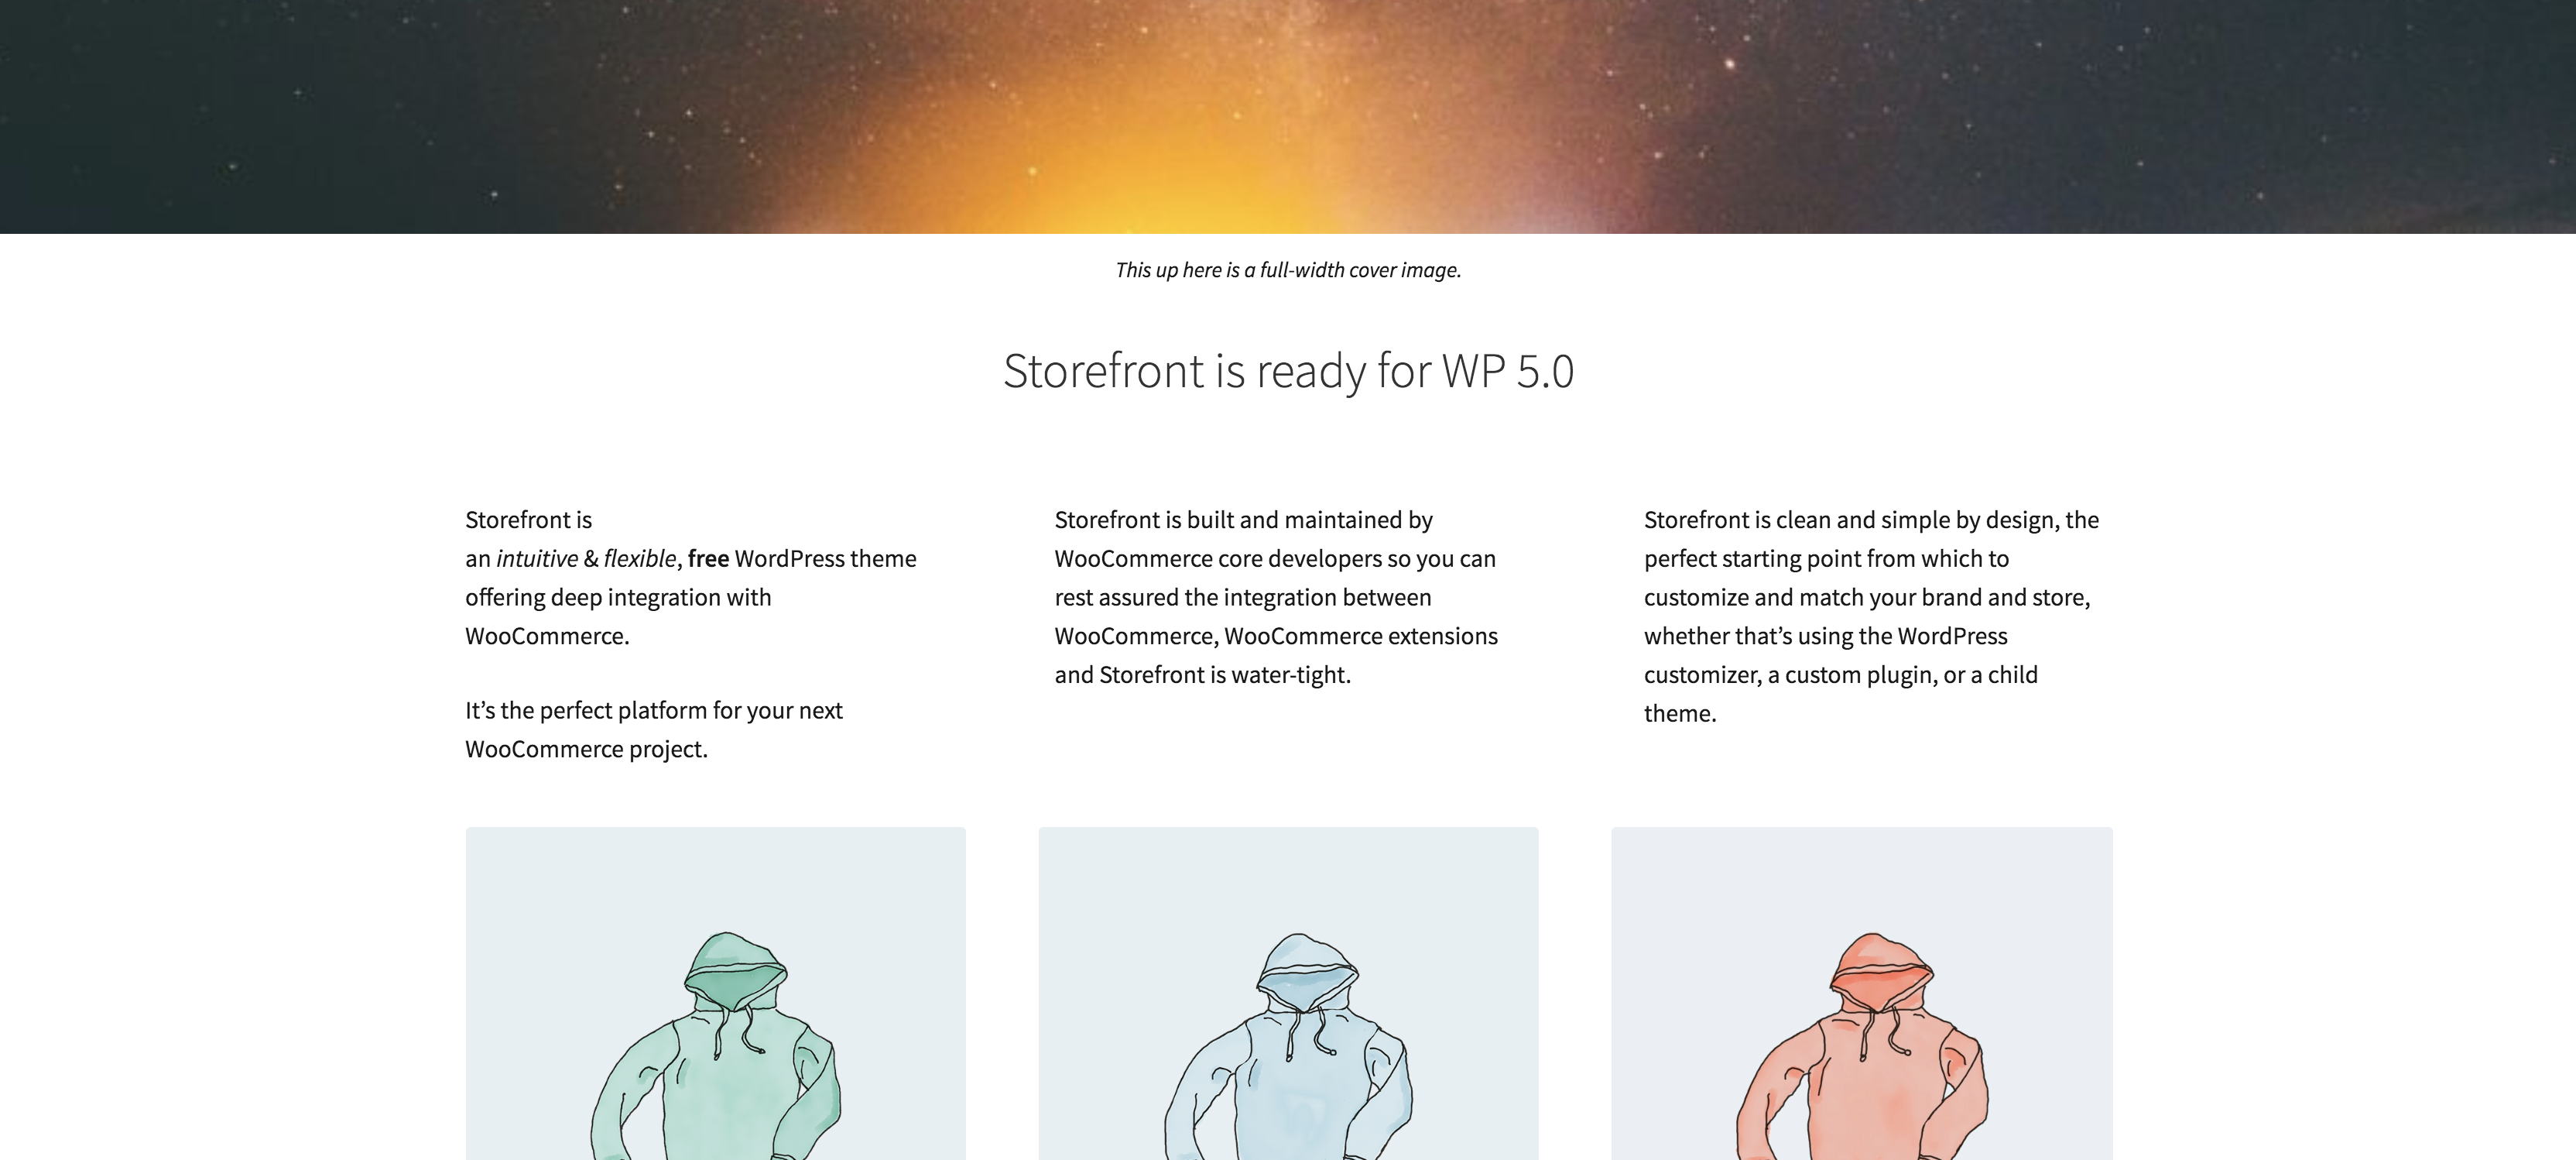 Storefront 2.4 and higher supports all of the new blocks introduced in WordPress 5.0